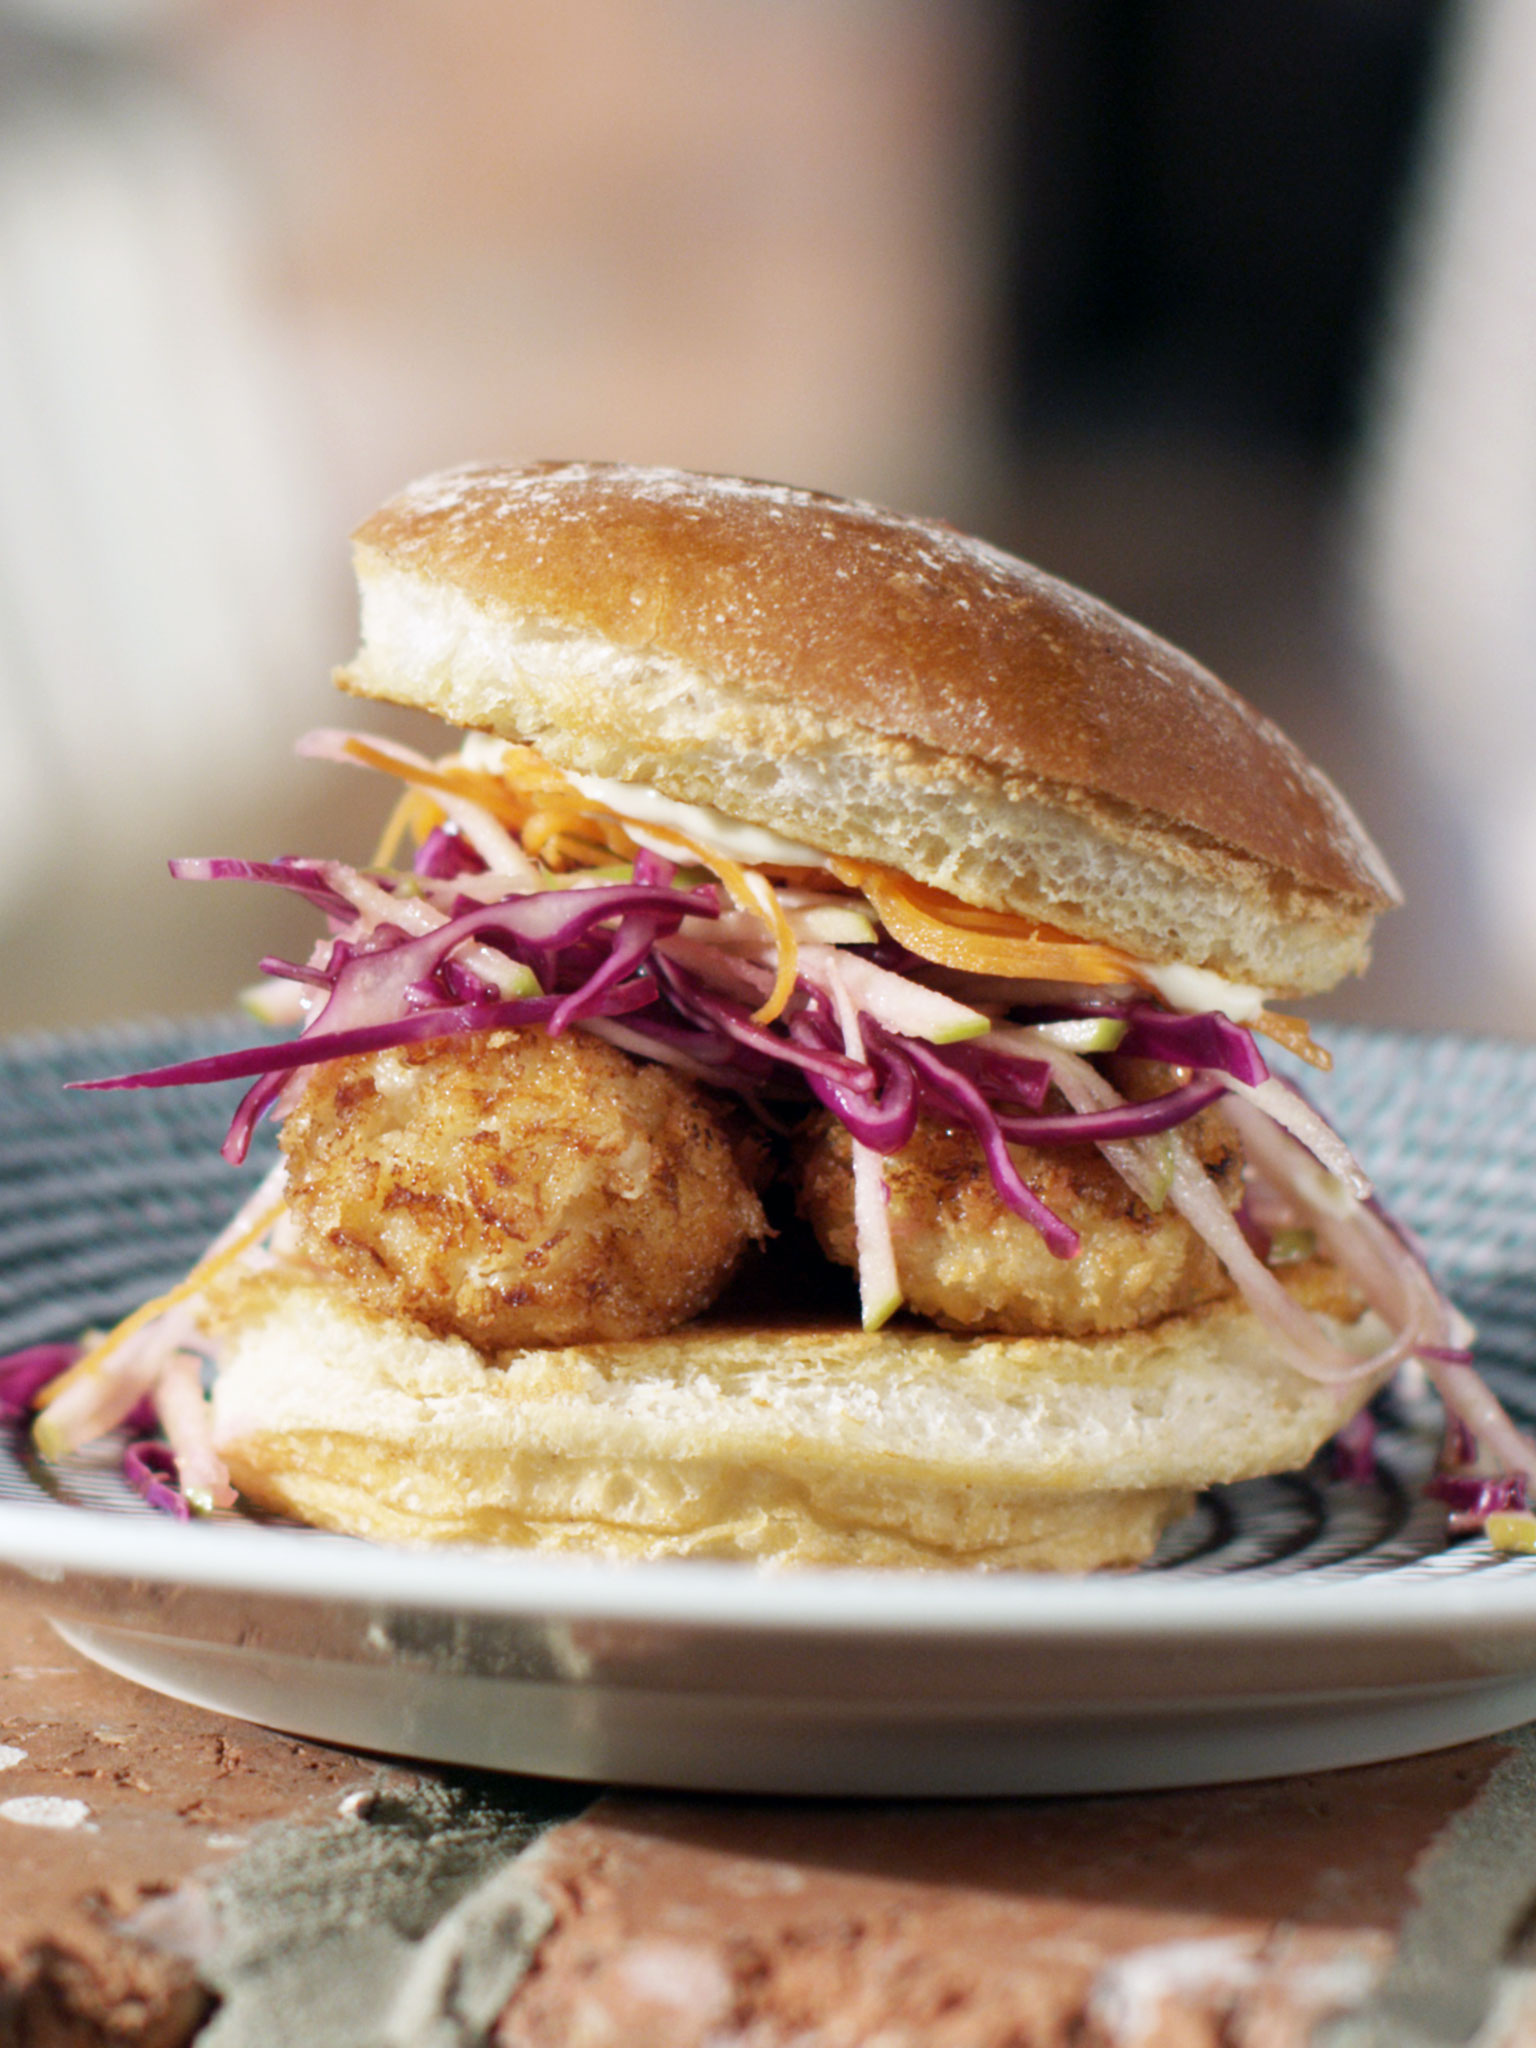 2-065-Jimmys-Crumbed-Scallop-Roll-web.jpg